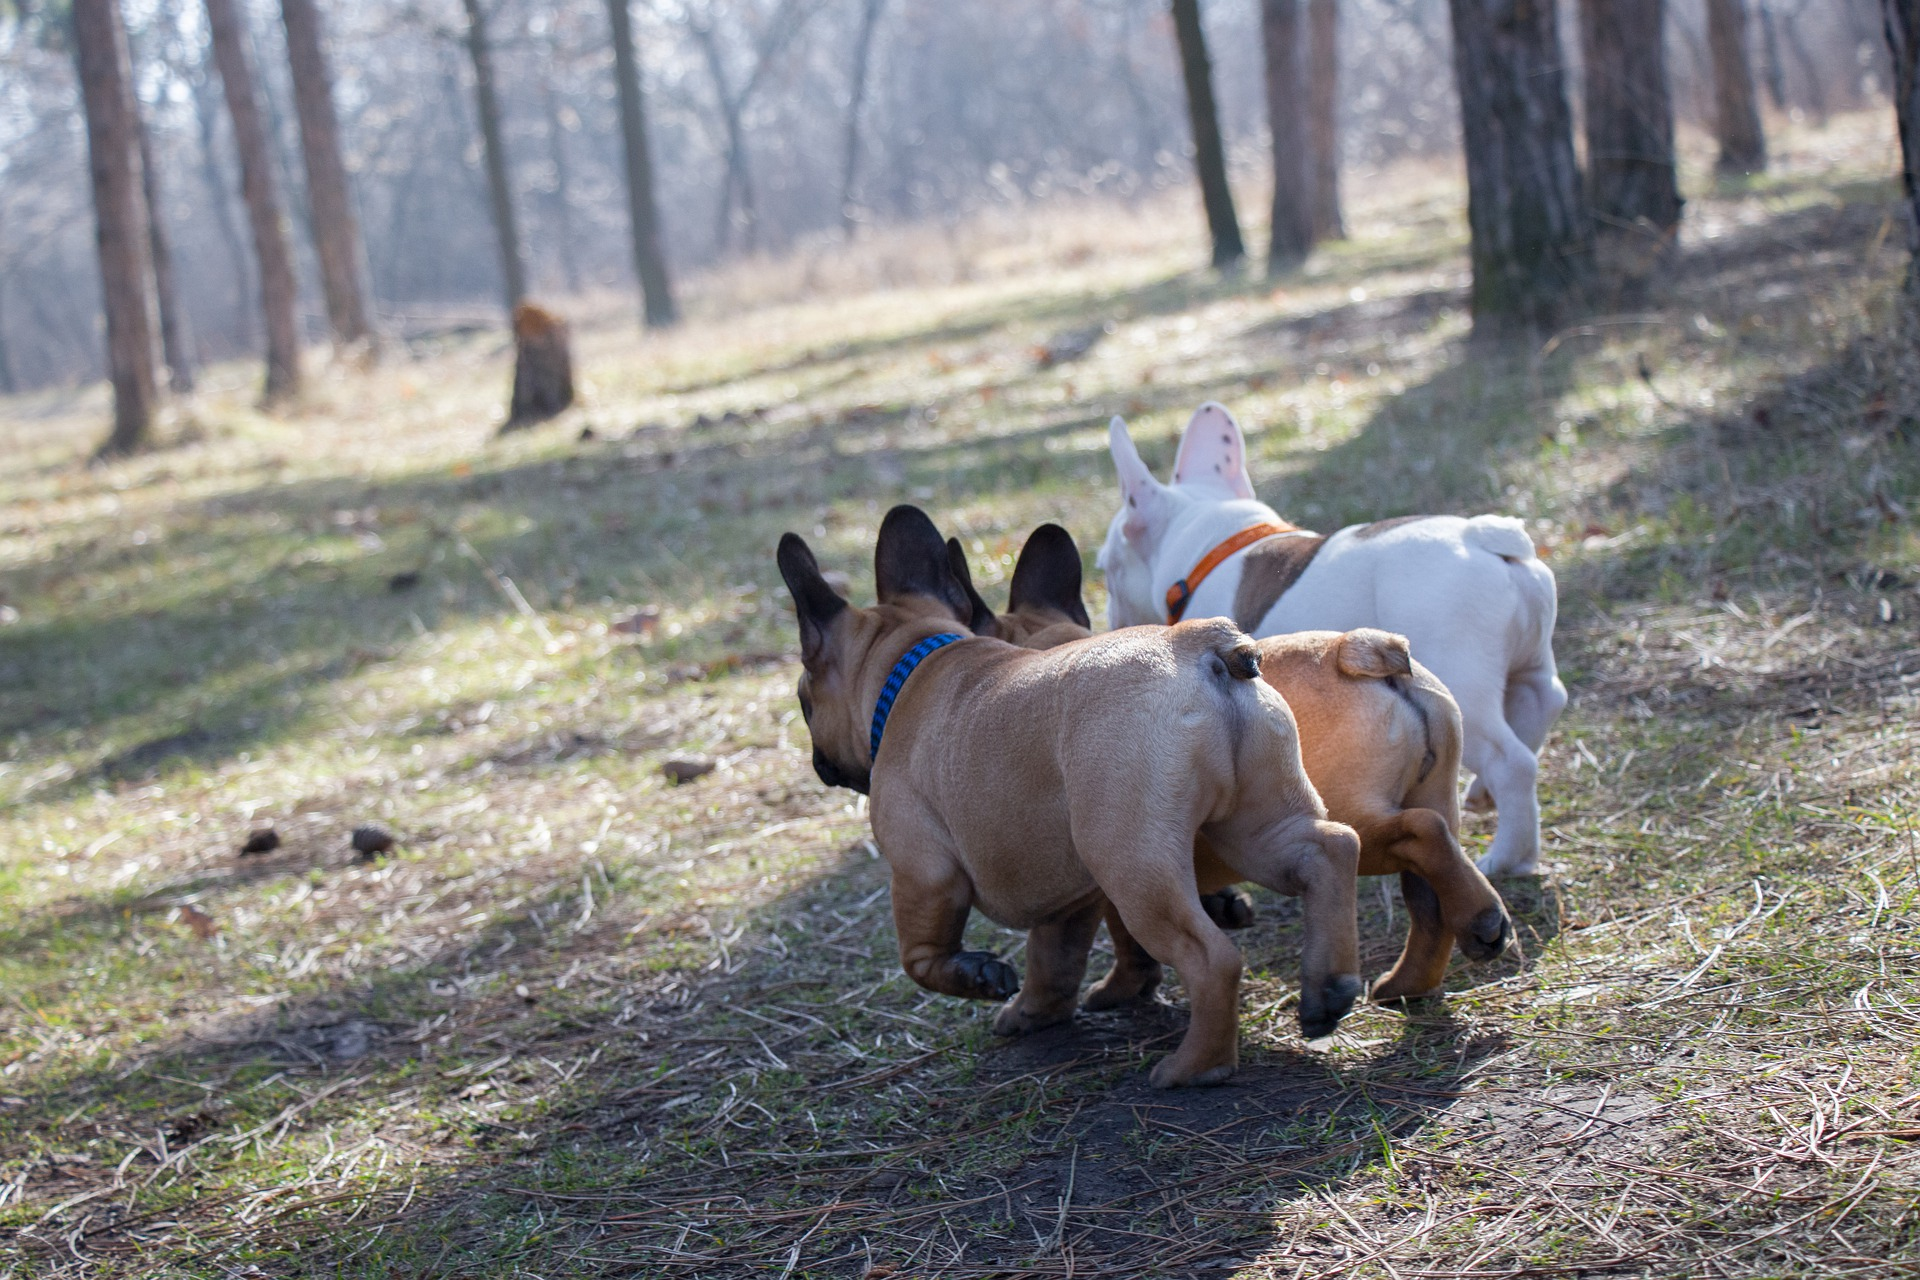 french bulldog puppies, frenchie puppies playing